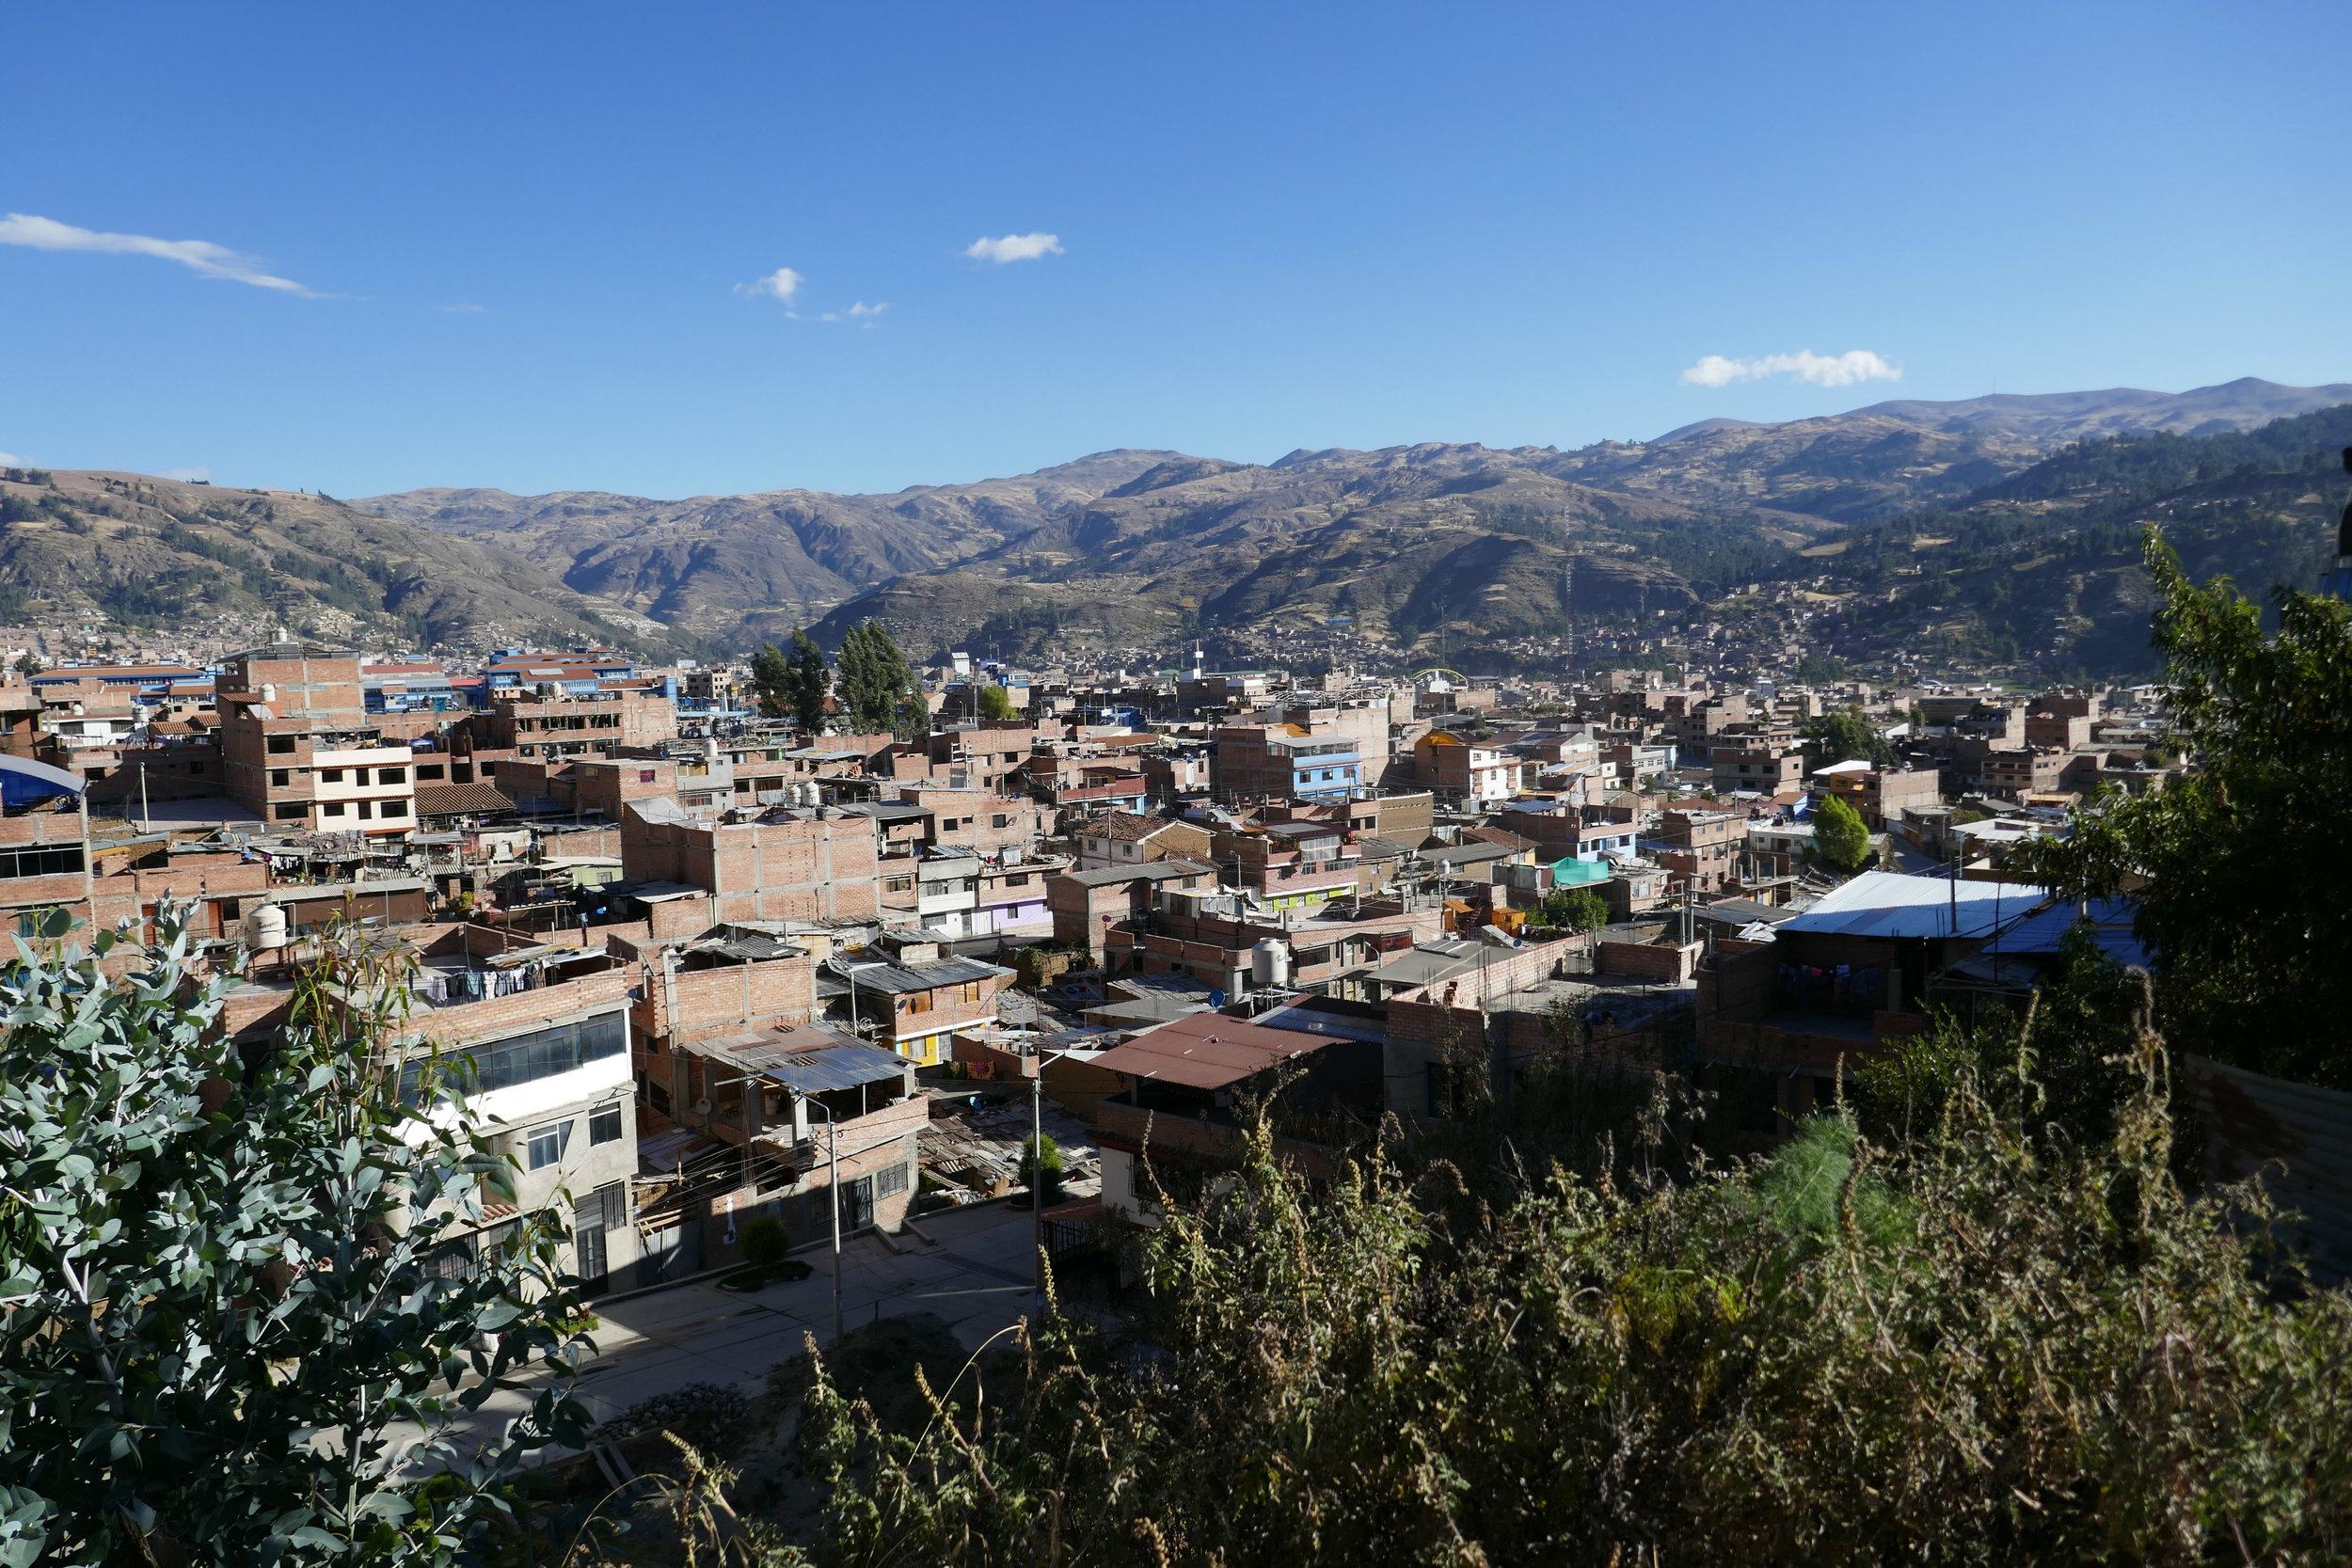 The view as I descended back into the town of Huaraz, Peru